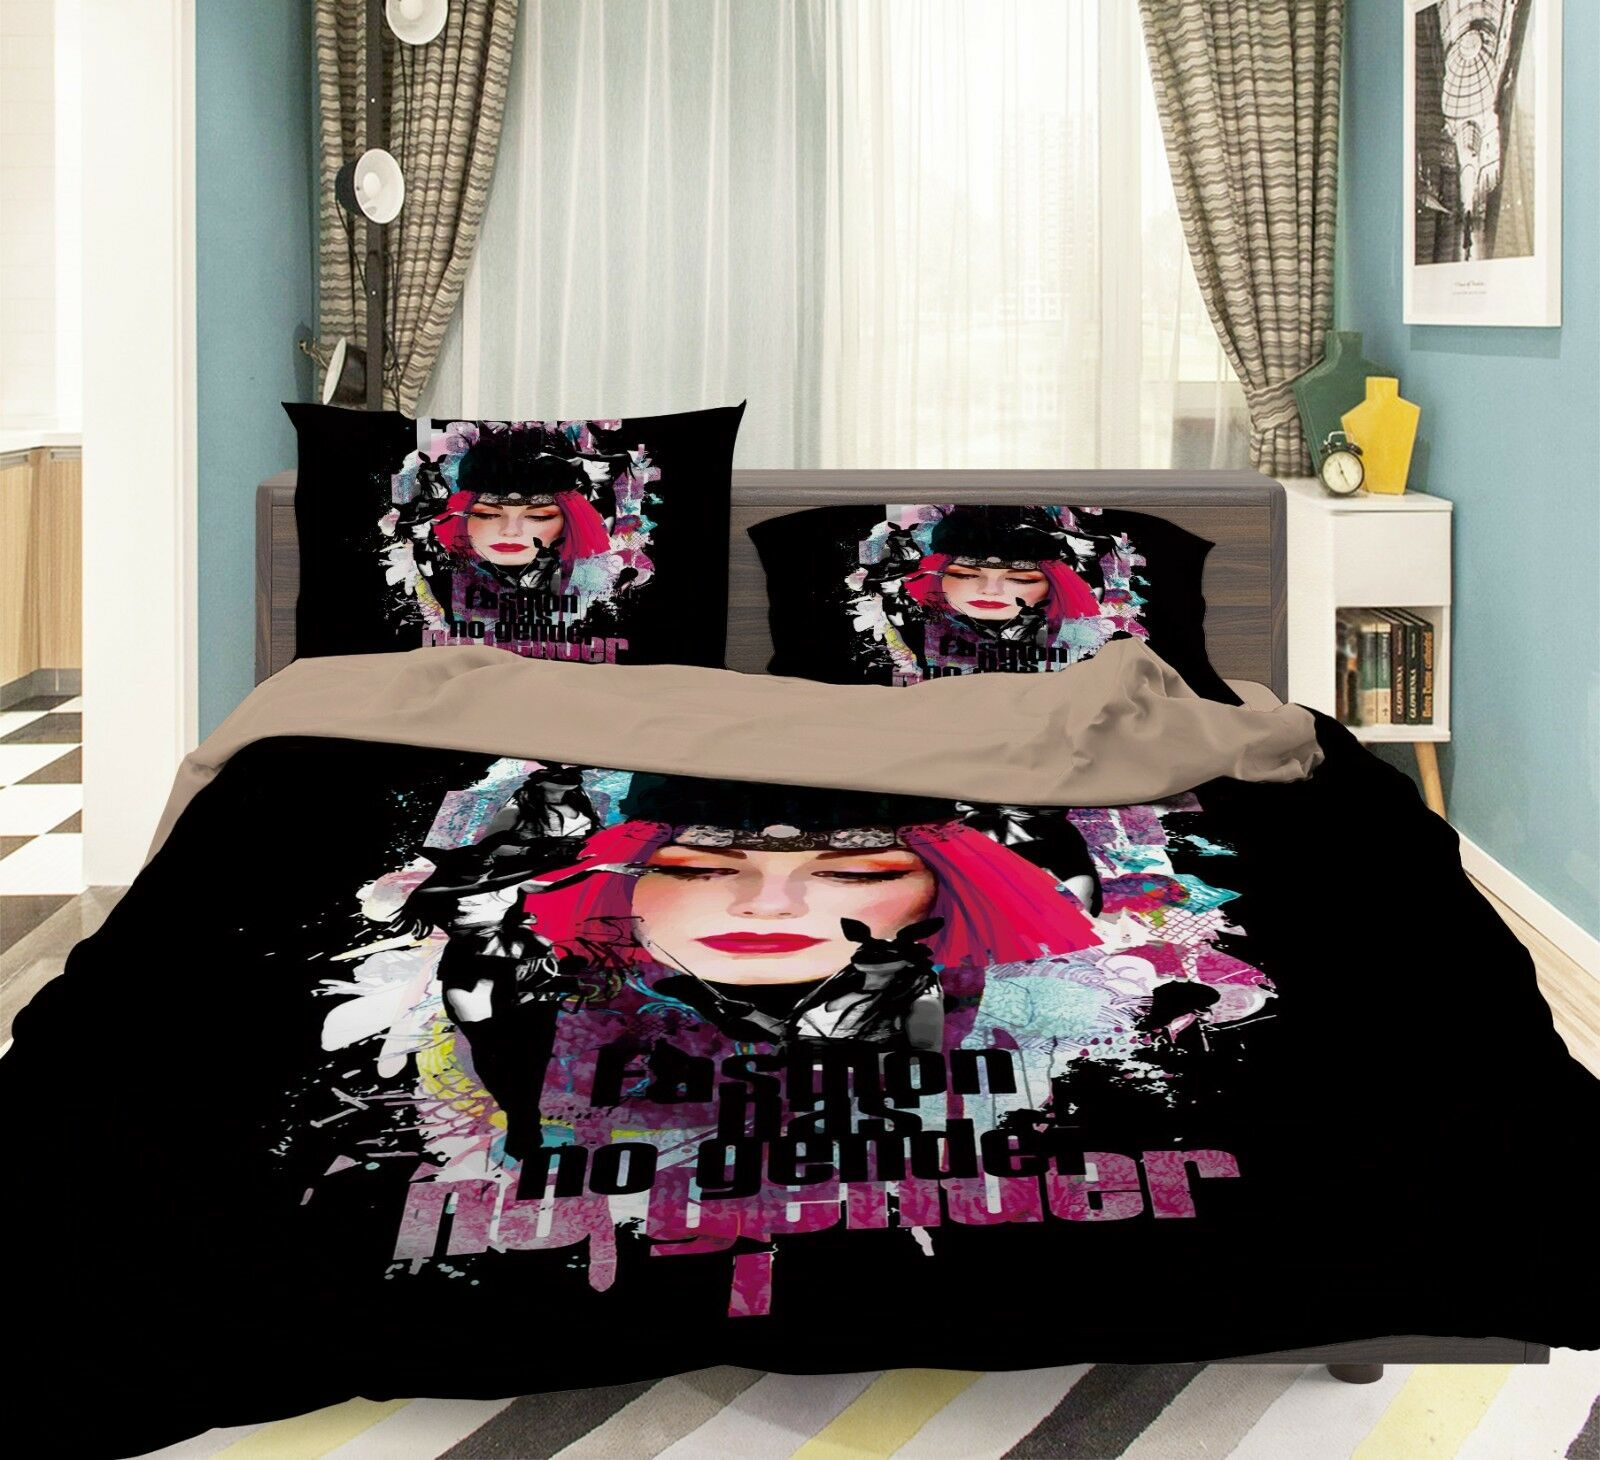 3D Funny Woman 1 Bed Pillowcases Quilt Duvet Cover Set Single Queen King Size AU